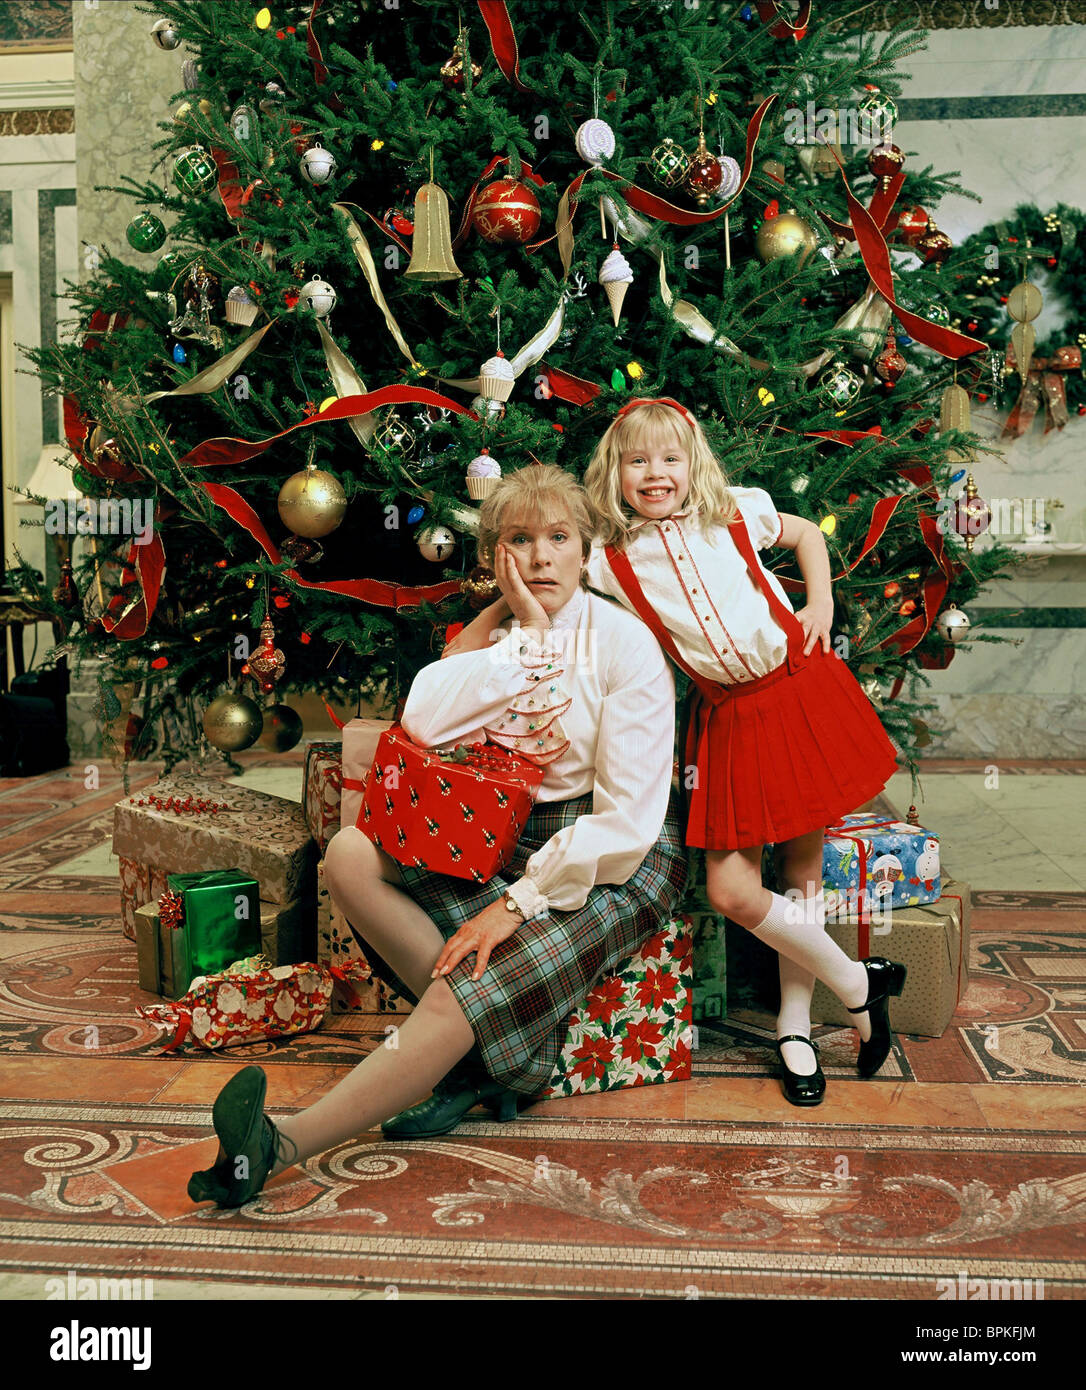 JULIE ANDREWS & SOFIA VASSILIEVA ELOISE AT CHRISTMASTIME (2003 ...